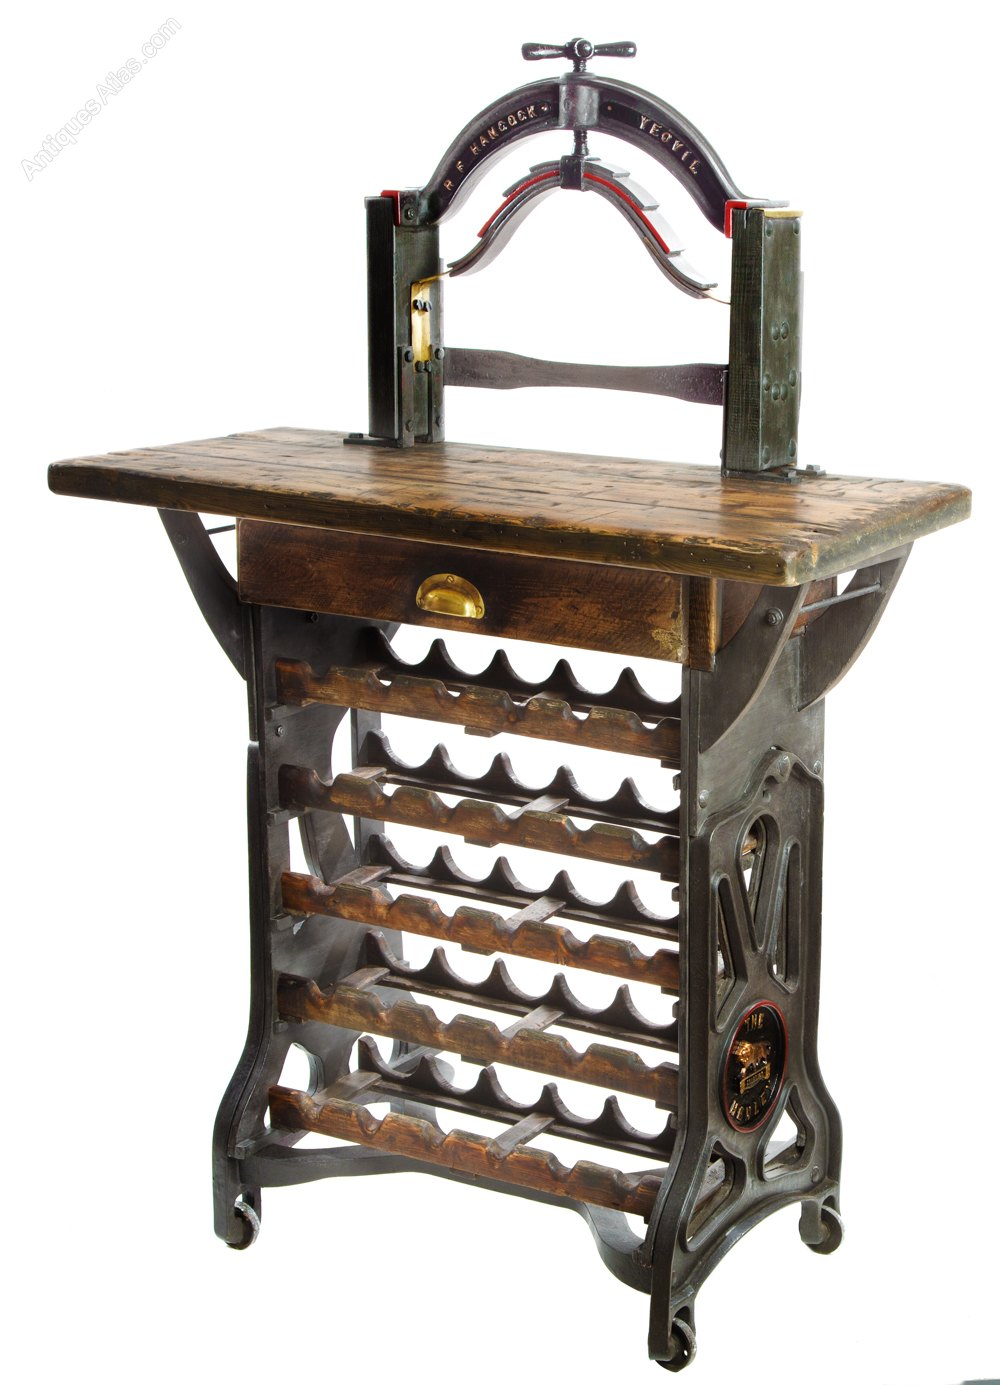 Quot The Henley Quot Victorian Mangle Wine Rack Amp Table Antiques